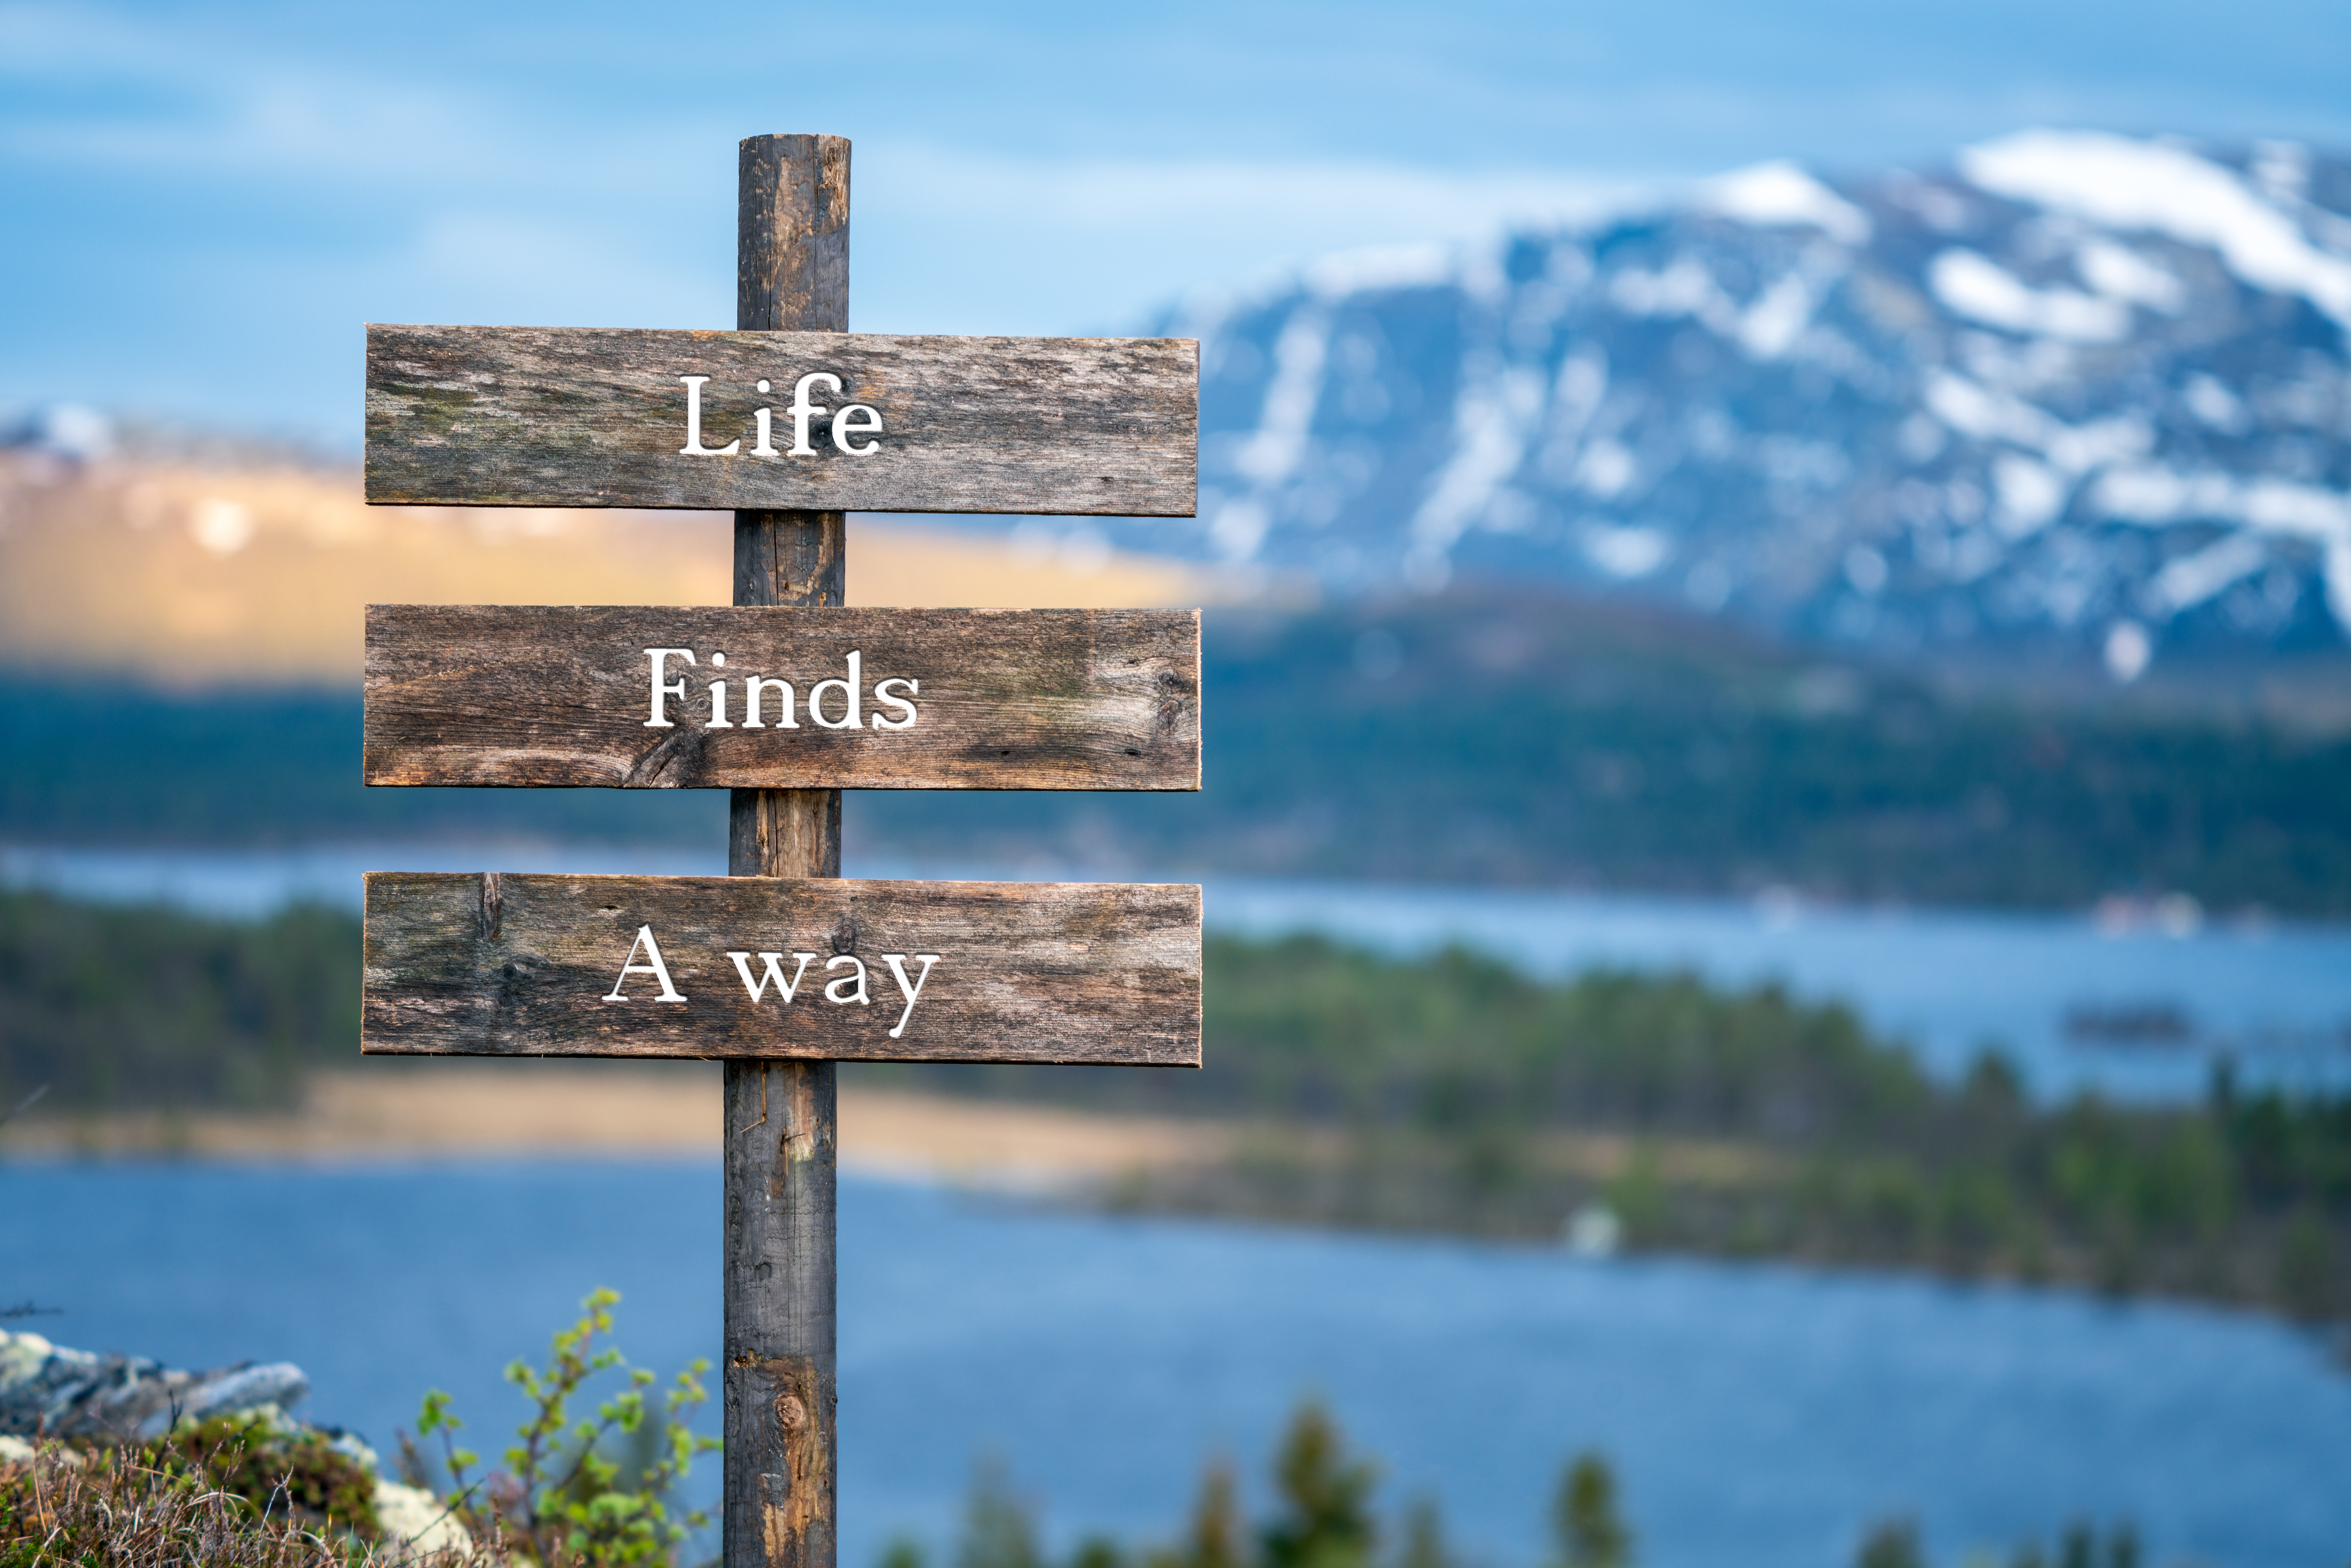 life finds a way text on wooden signpost outdoors in landscape scenery during blue hour. Sunset light, lake and snow capped mountains in the back.